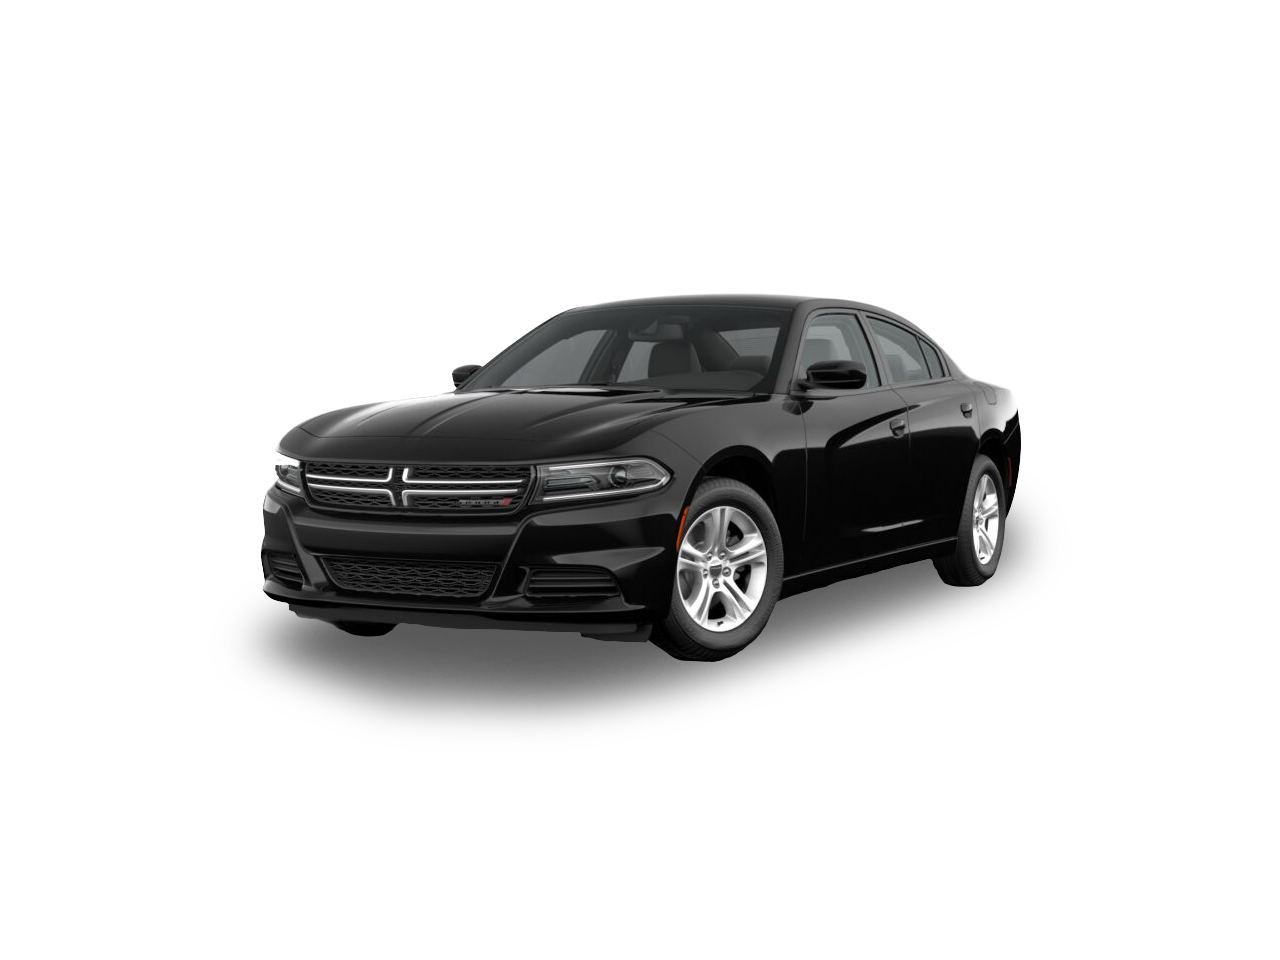 Test Drive A 2017 Dodge Charger at Arrigo CDJR West Palm Beach in West Palm Beach